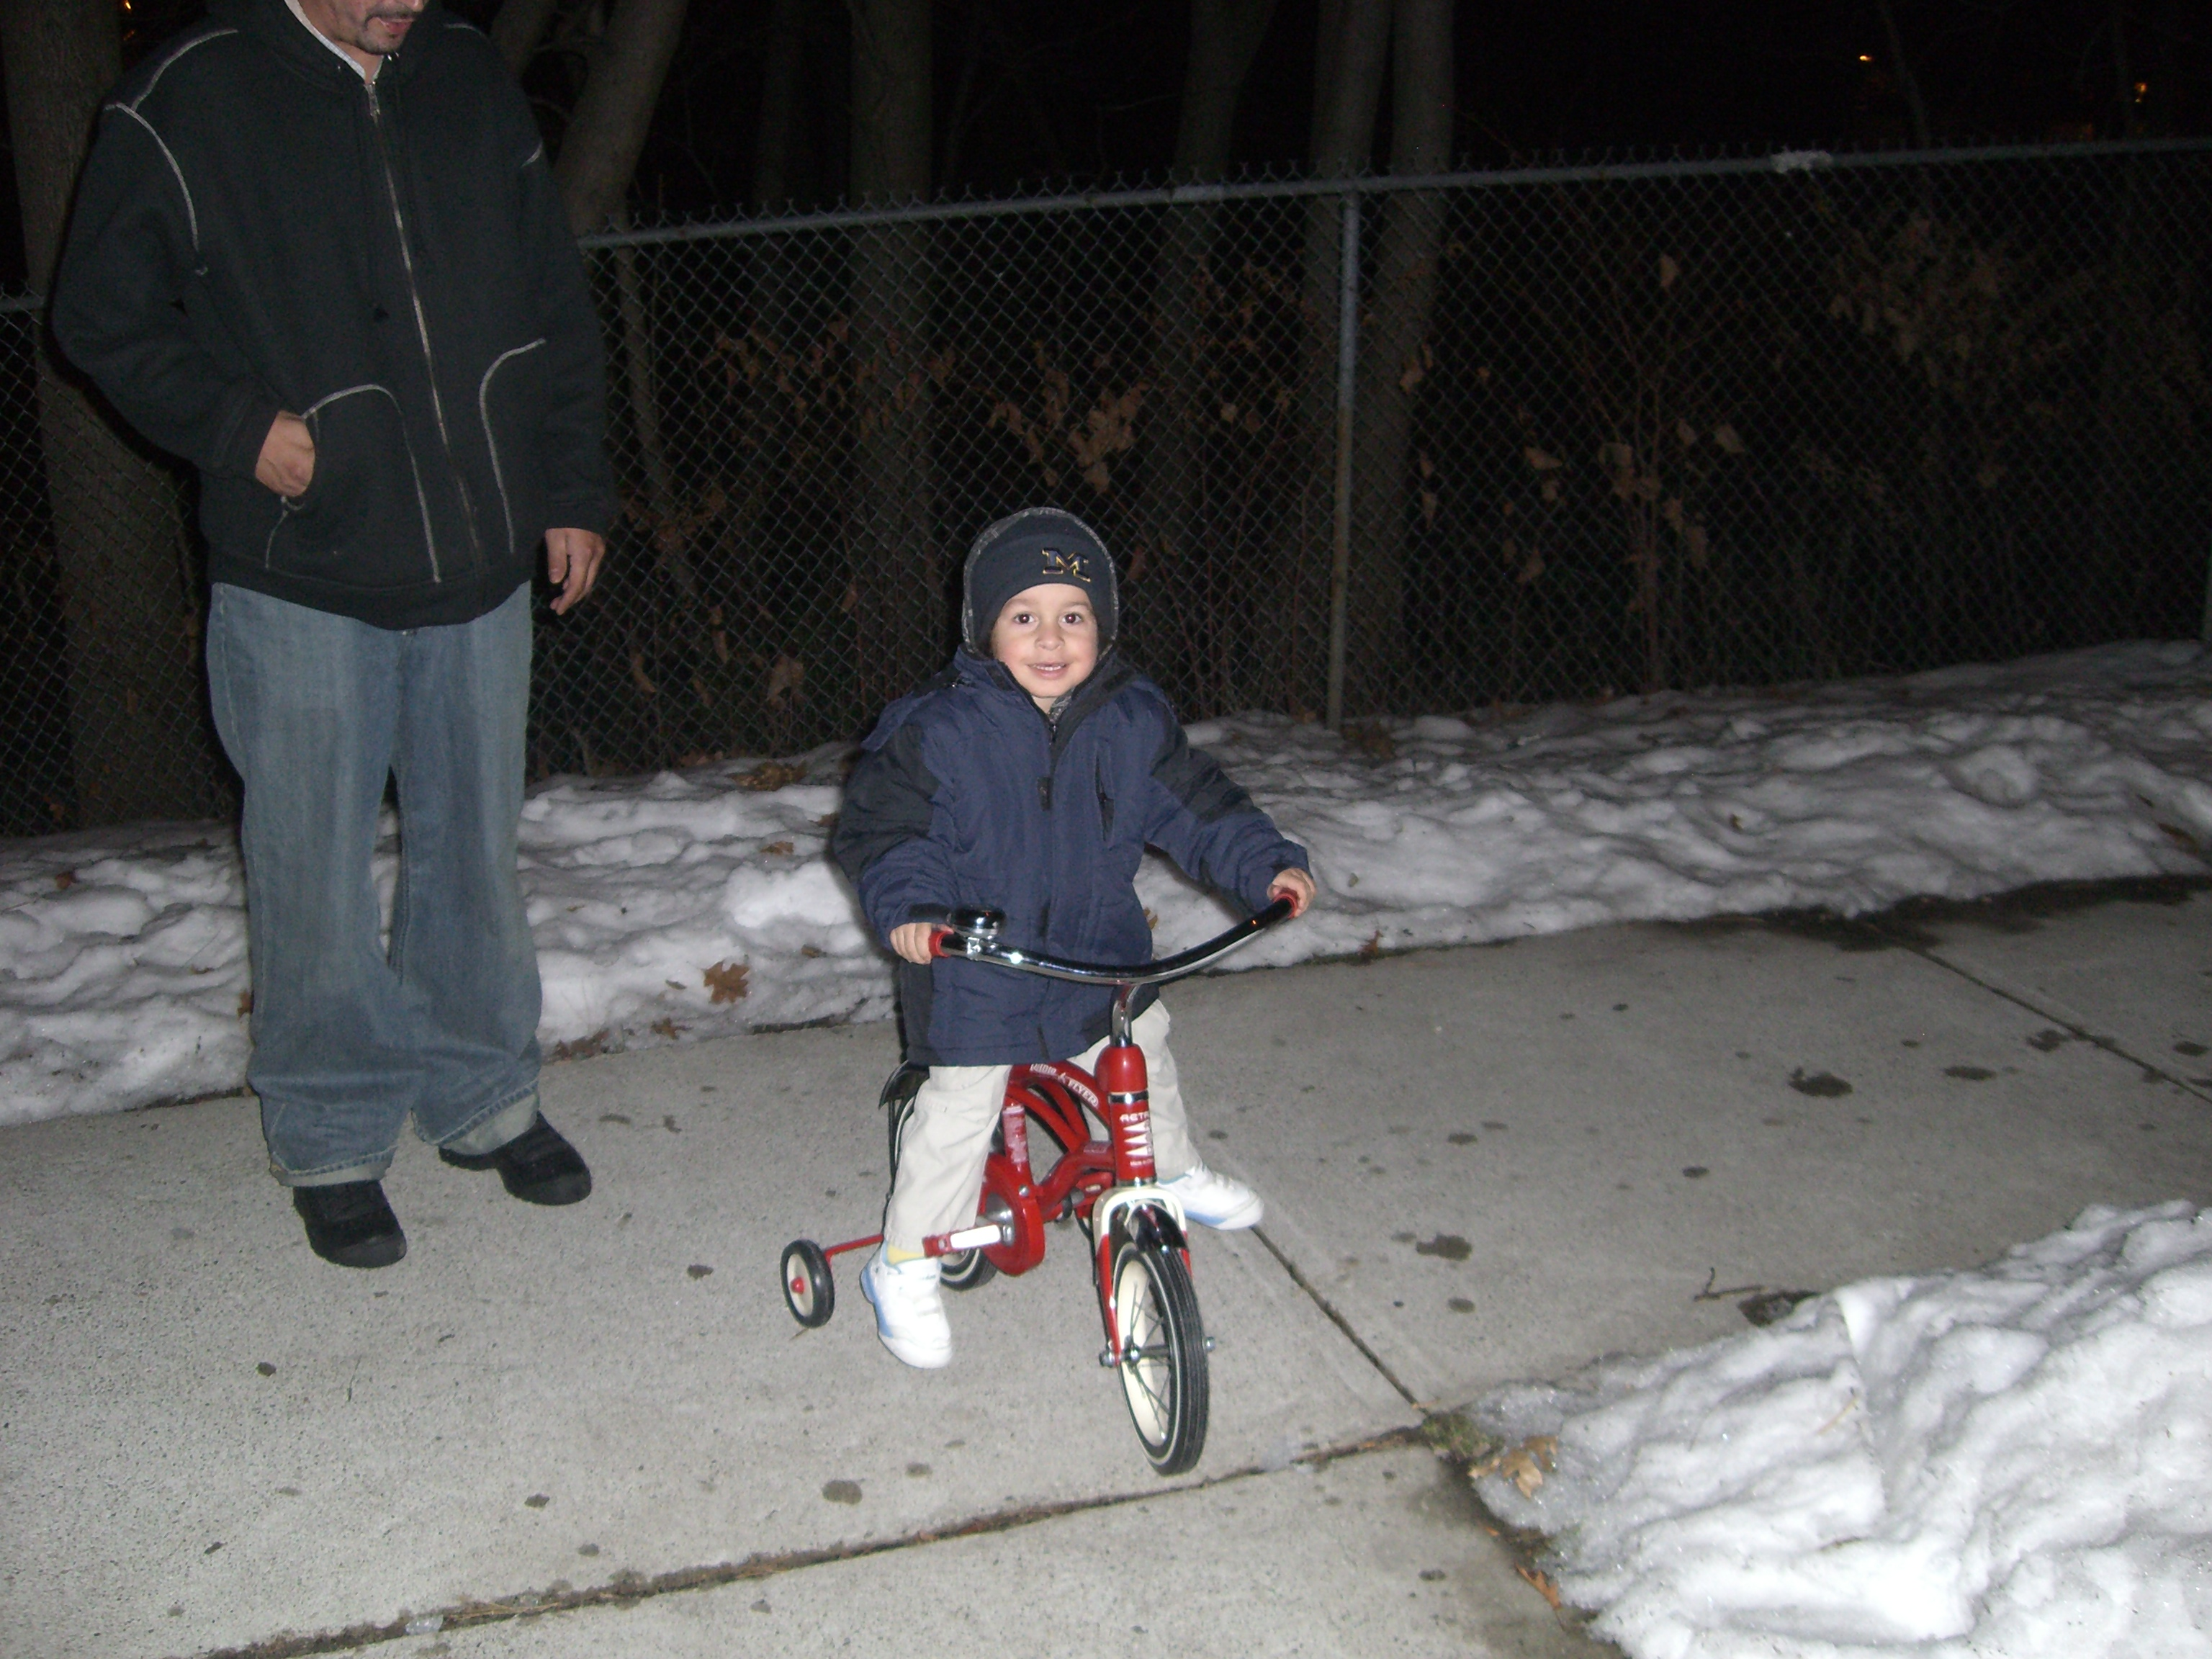 Photo of the author as a child outdoors and riding a tricycle. Photo courtesy of the author.